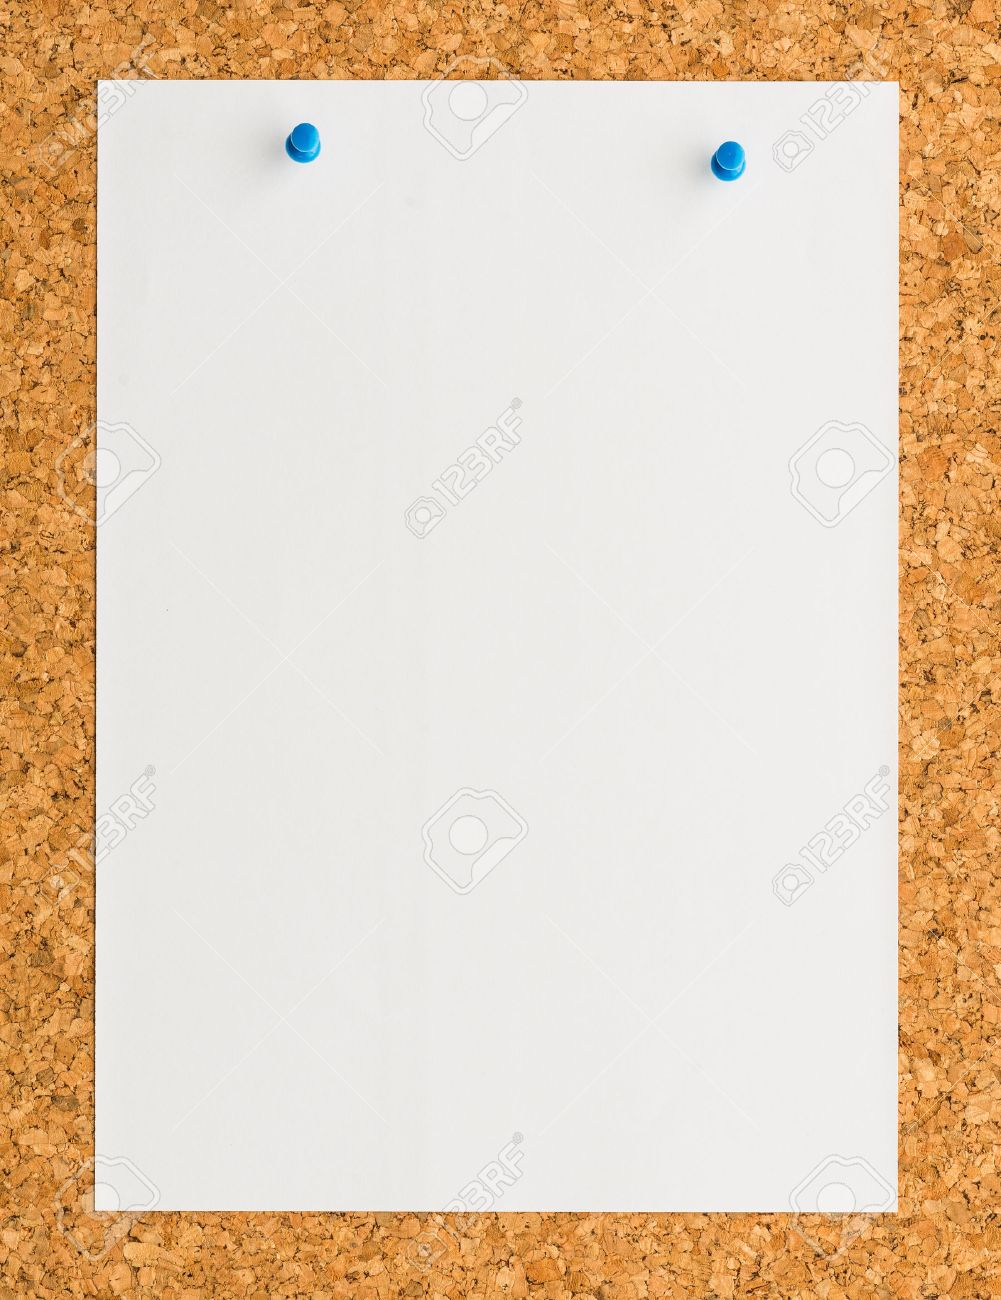 Blank paper to write on